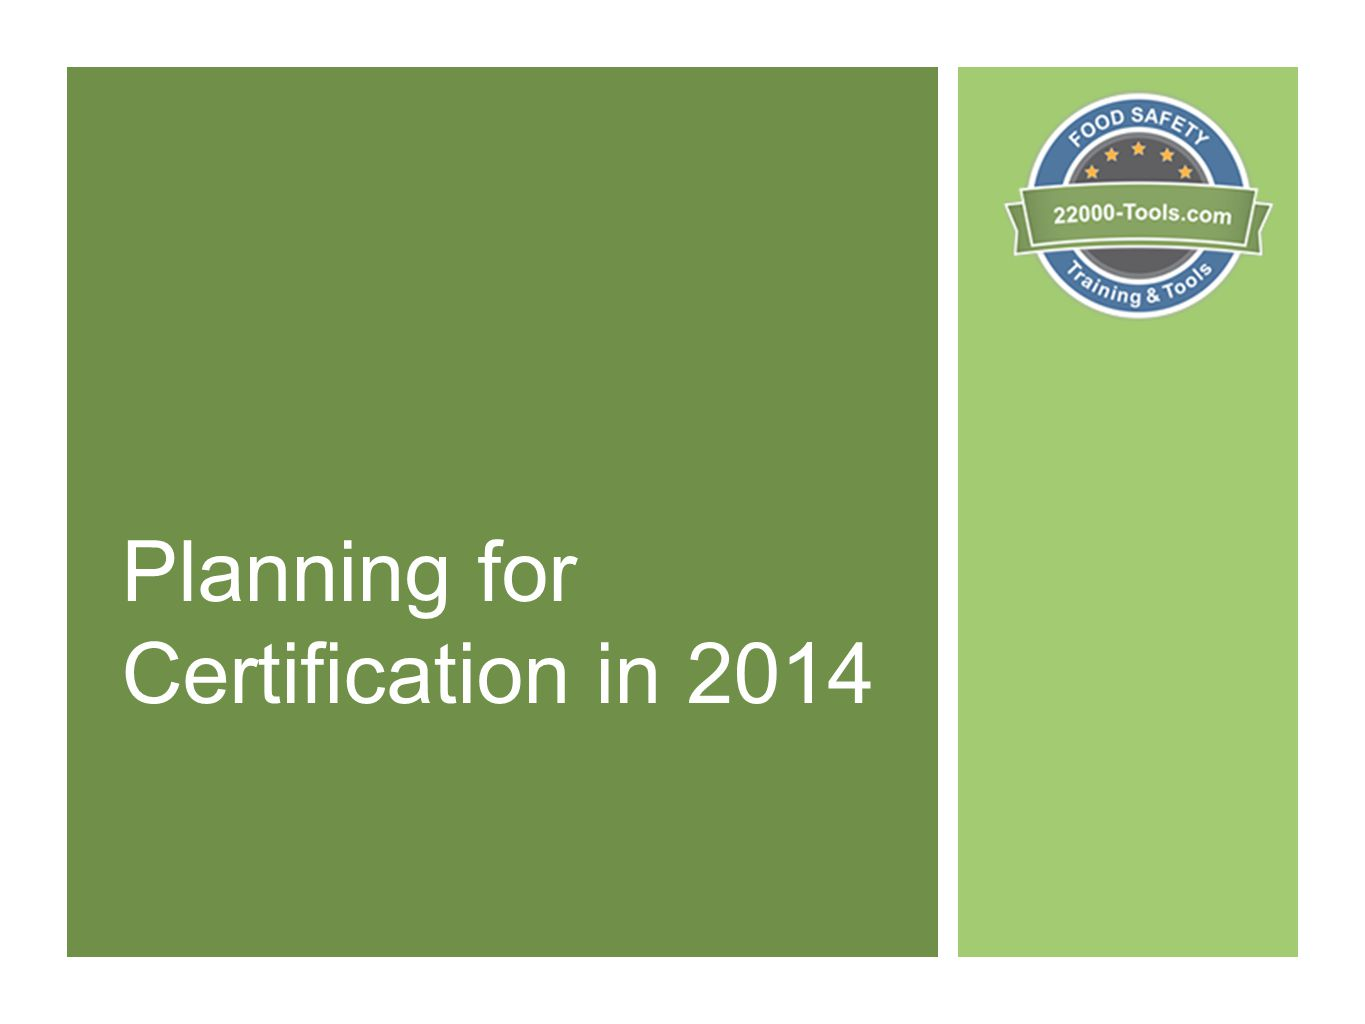 Planning for Certification in 2014